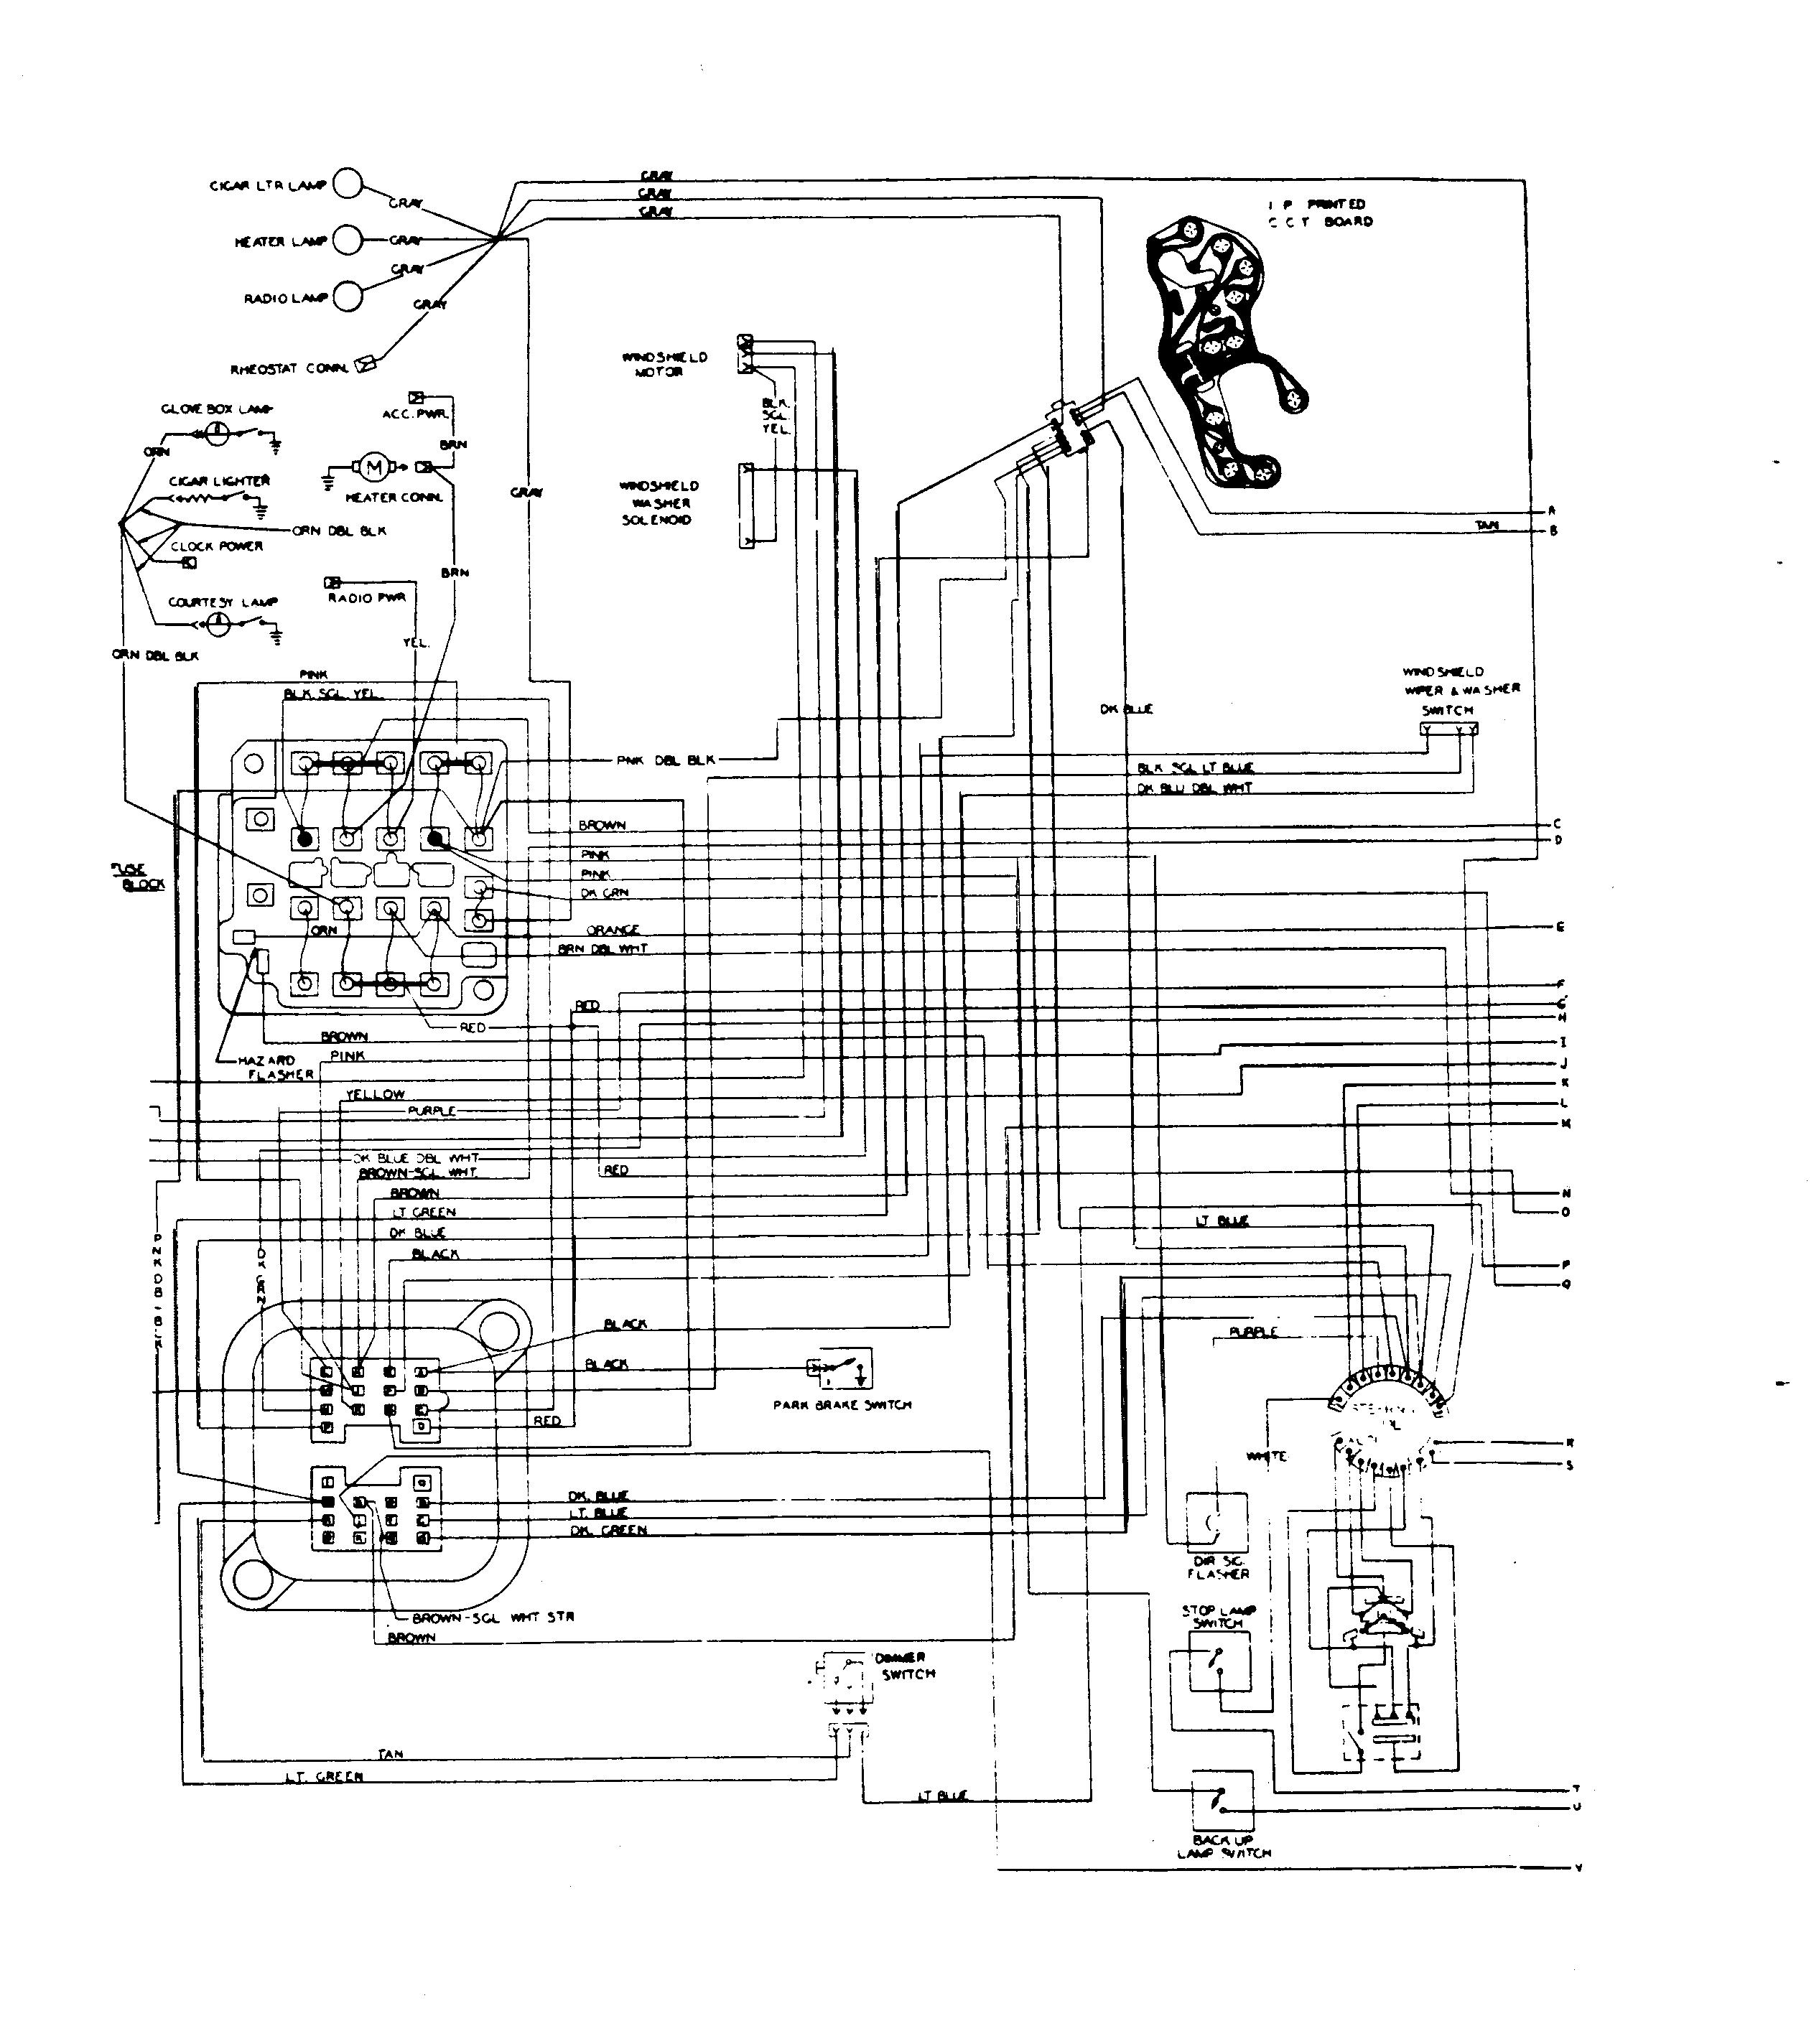 1968 Pontiac Gto Engine Diagram 1966 Ford F100 Blinker Switch Wiring Bonek Losdol2 Jeanjaures37 Fr